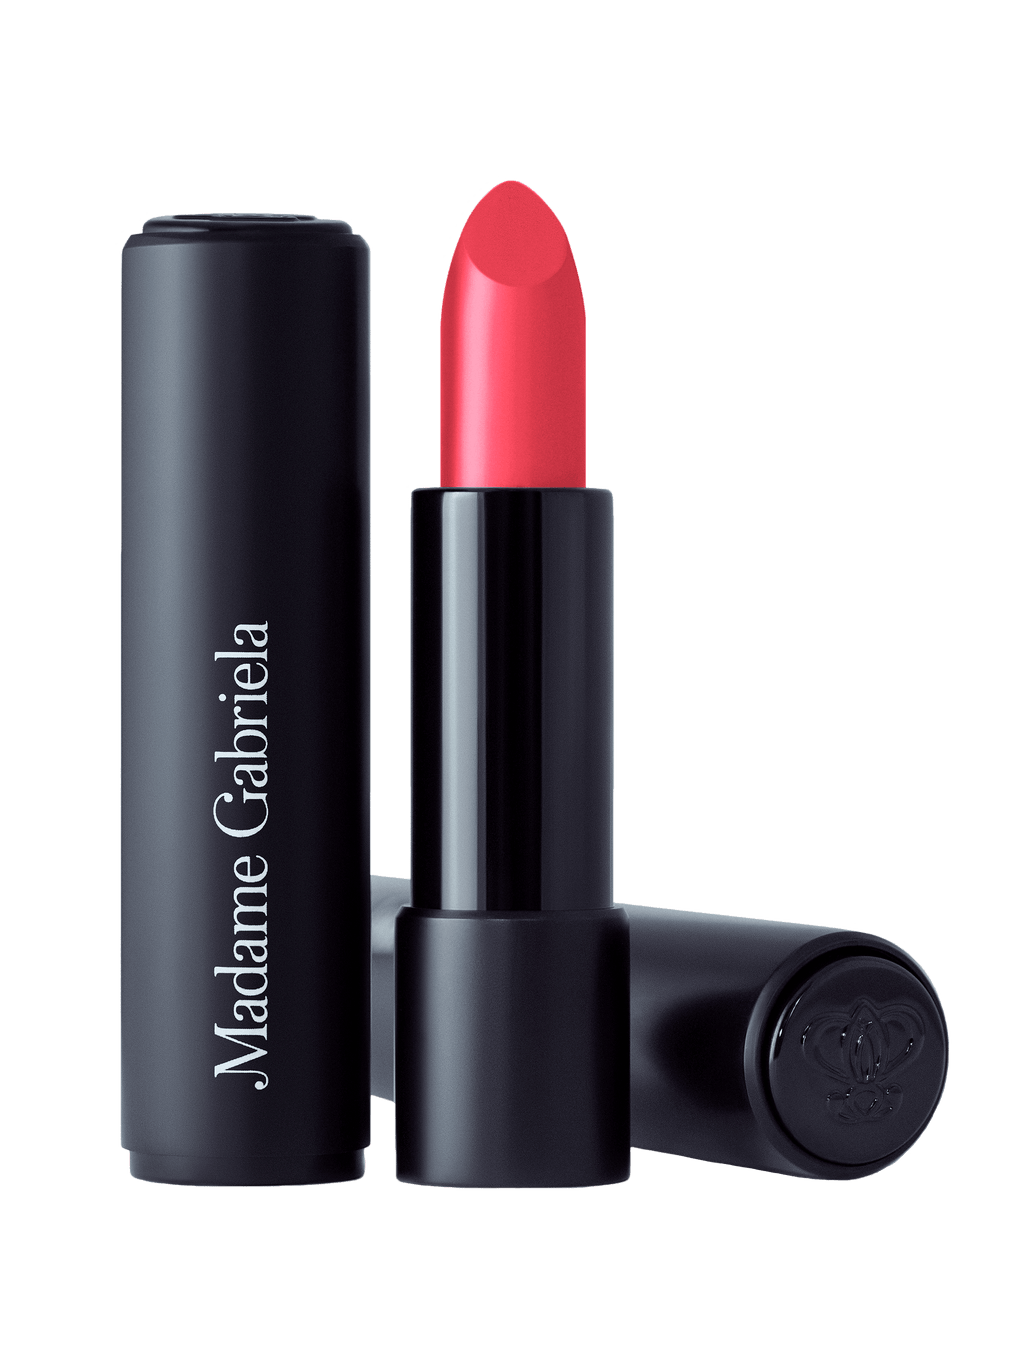 Madame Gabriela New York at 1PM Pink All-Natural Clean Beauty Lipstick